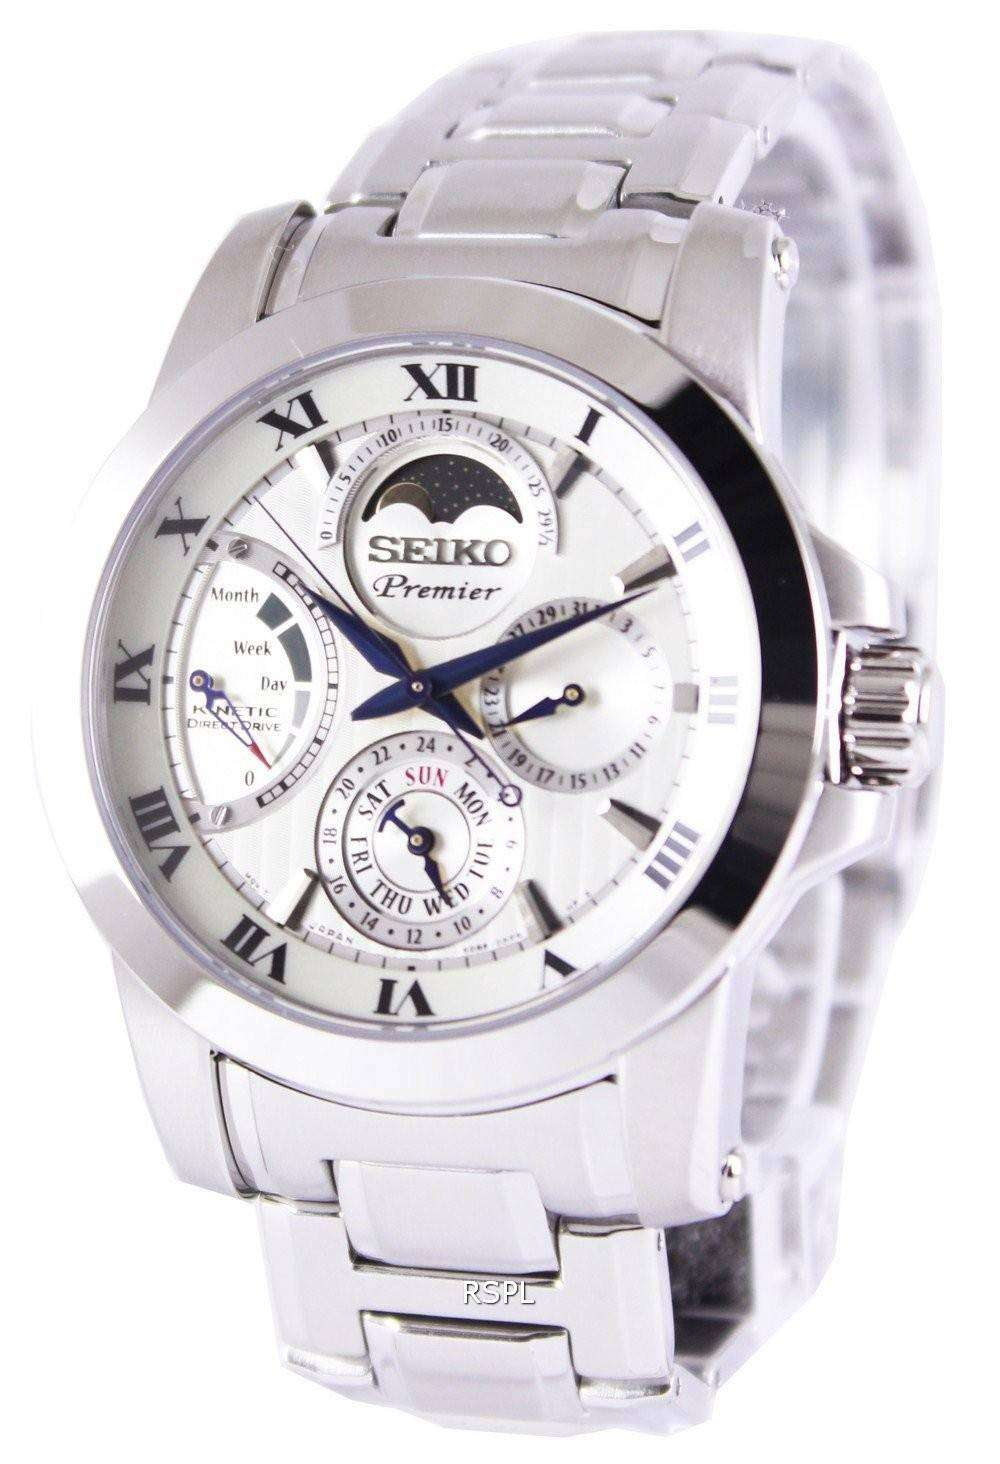 Seiko premier kinetic direct drive moon phase srx011p1 srx011p mens watch zetawatches for Watches direct